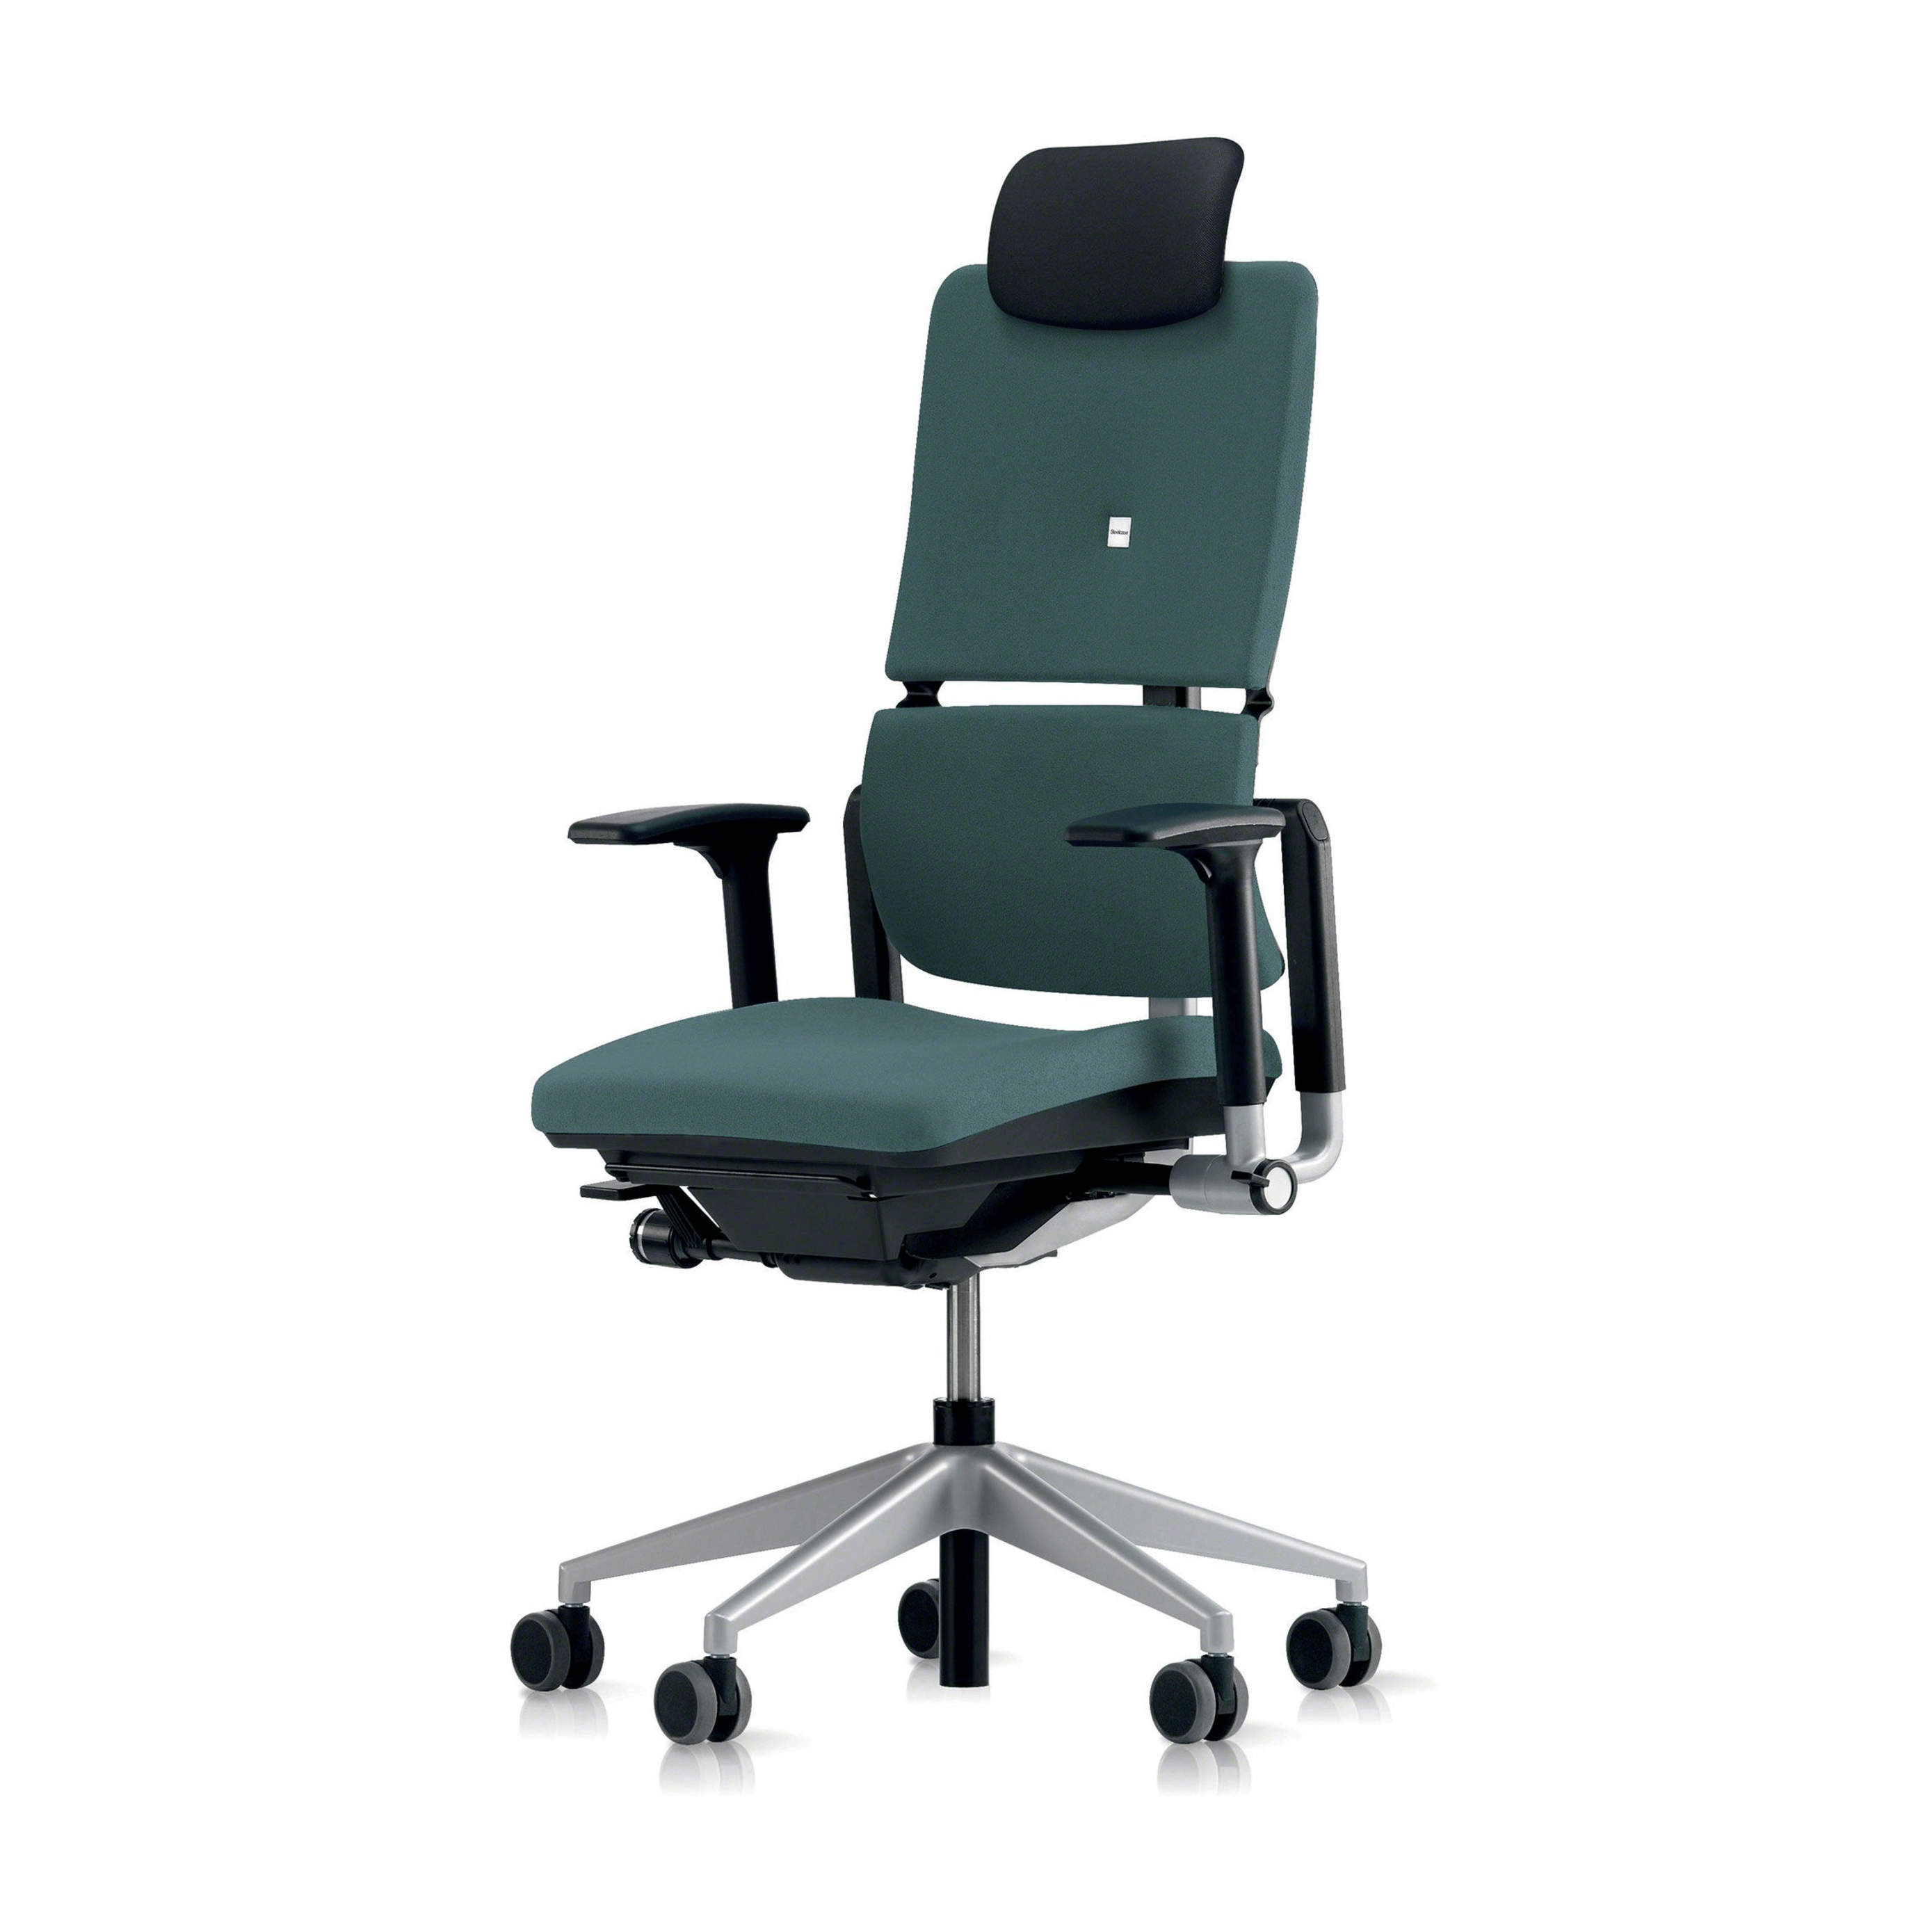 Please Steelcase De Alternativ Bureau Chaises jMVGpLqUzS